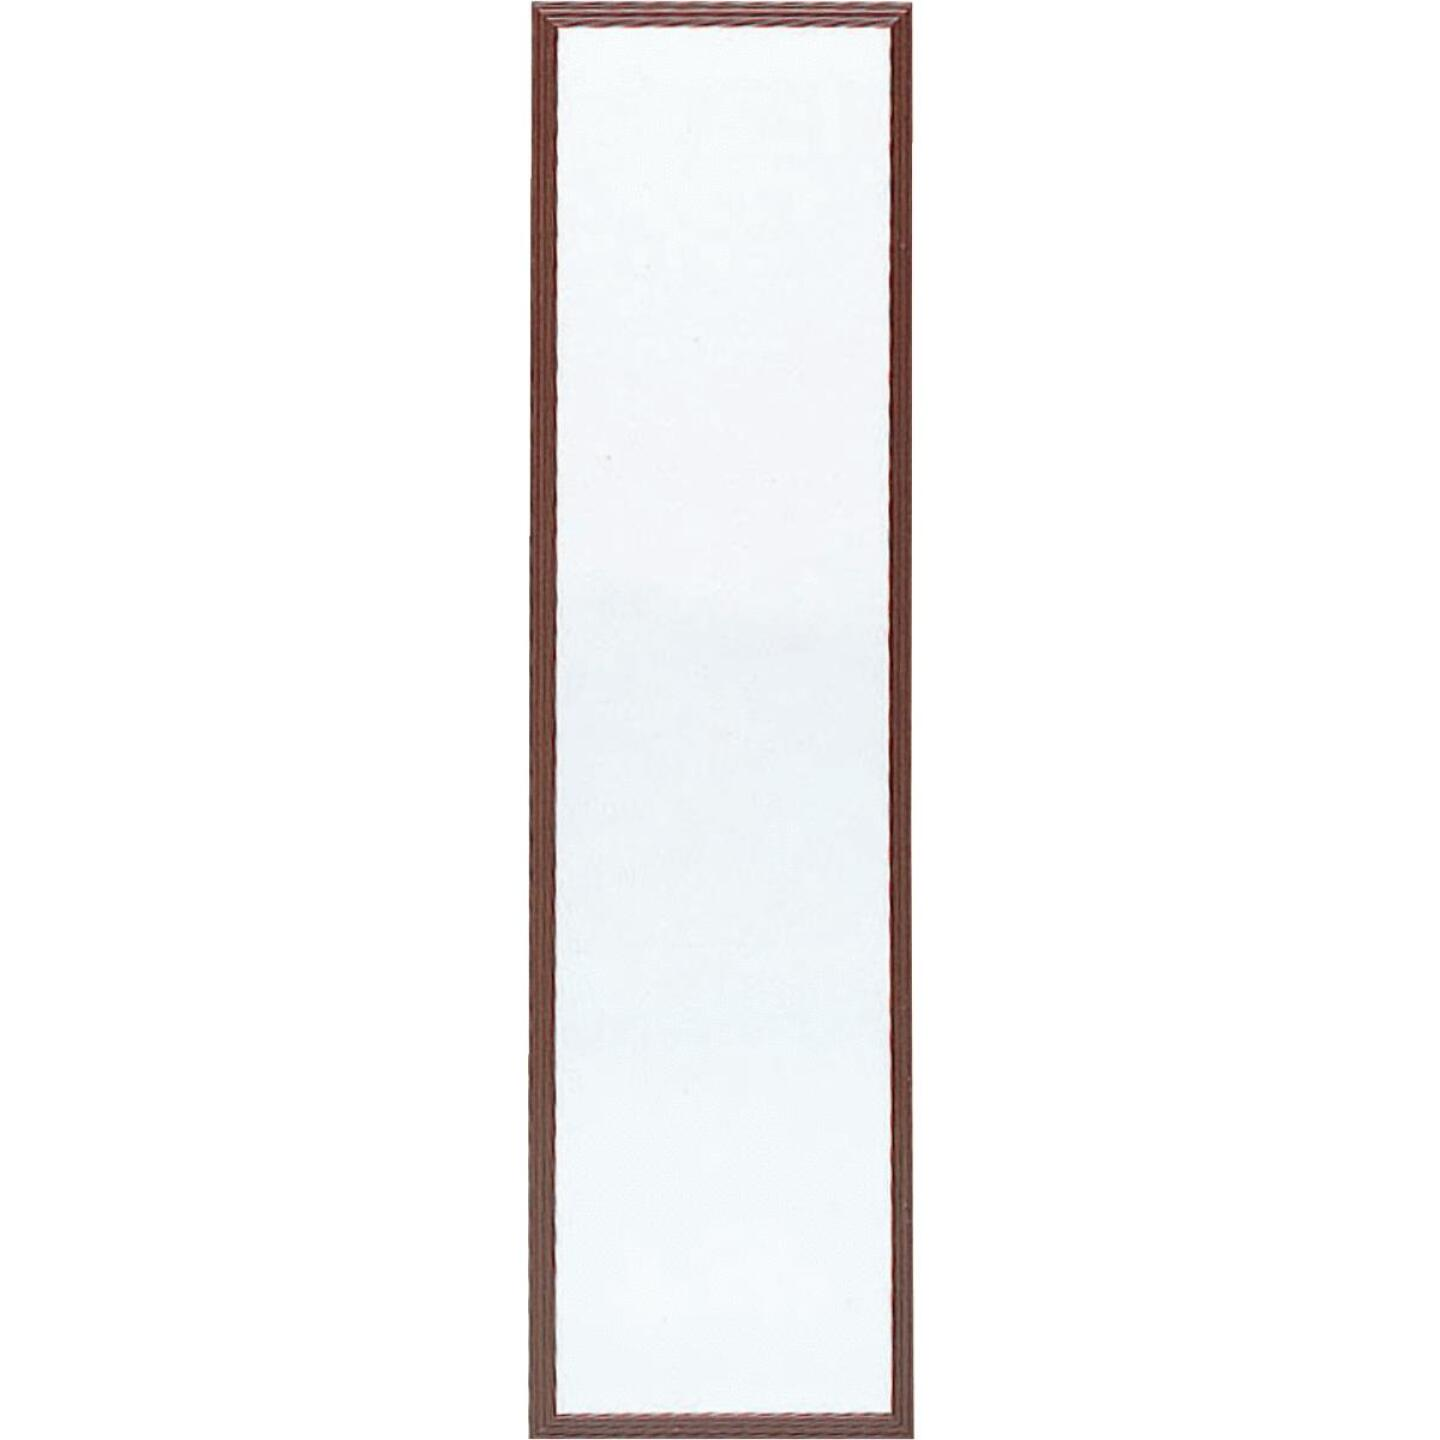 Home Decor Innovations Suave 13 In. x 49 In. Walnut Brown Plastic Door Mirror Image 1